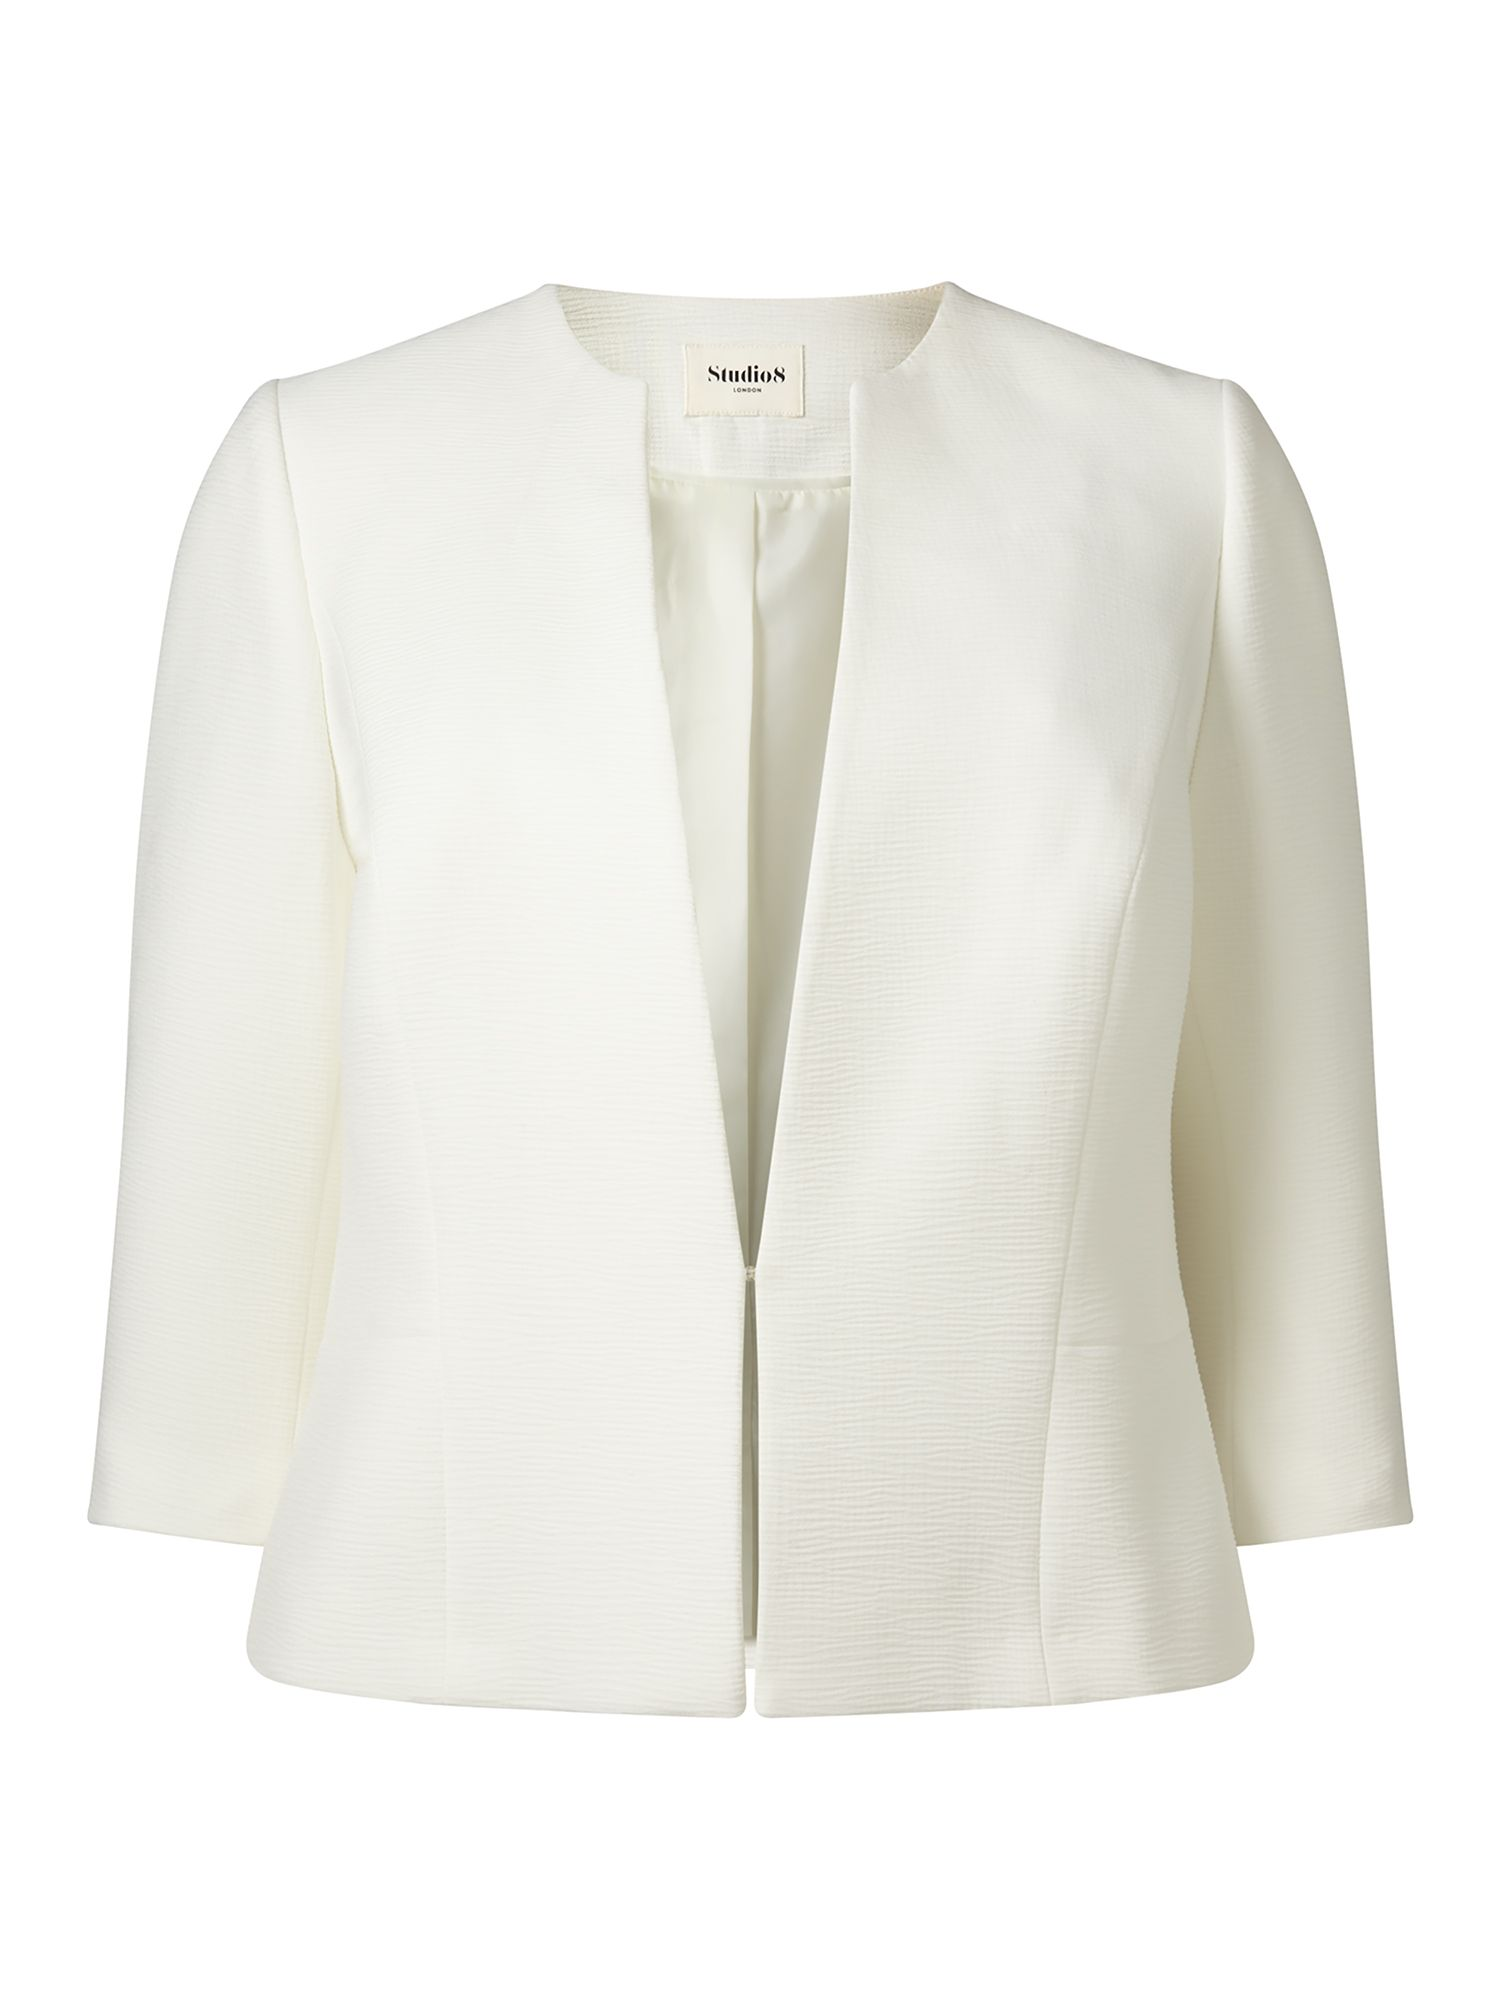 Studio 8 Hannah Jacket, White